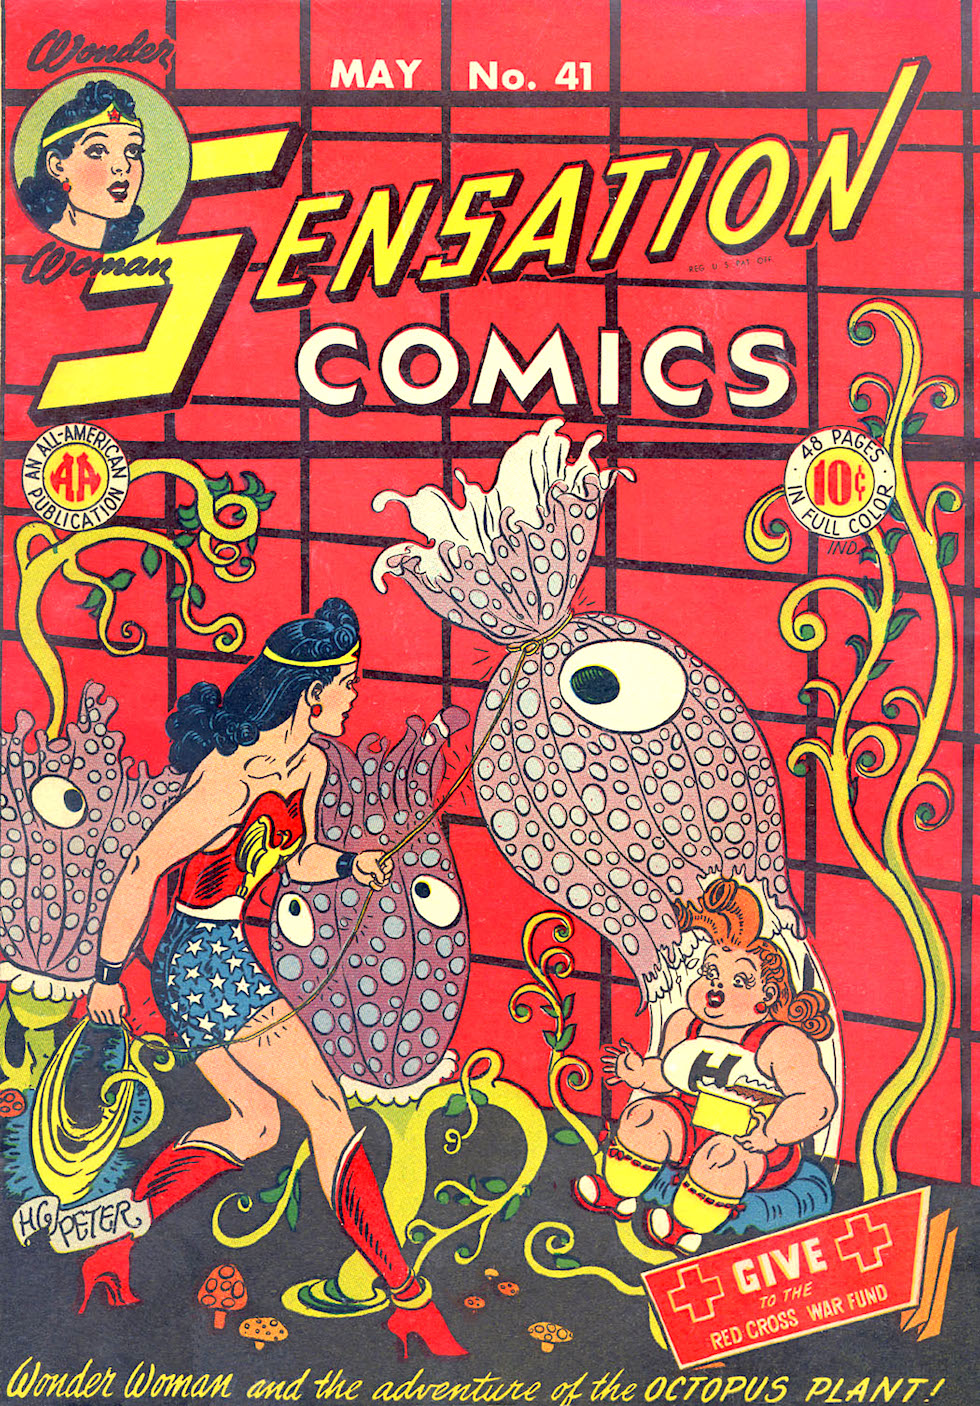 'Sensation Comics' #41, AA Comics, Art by Harry G. Peter, 1945